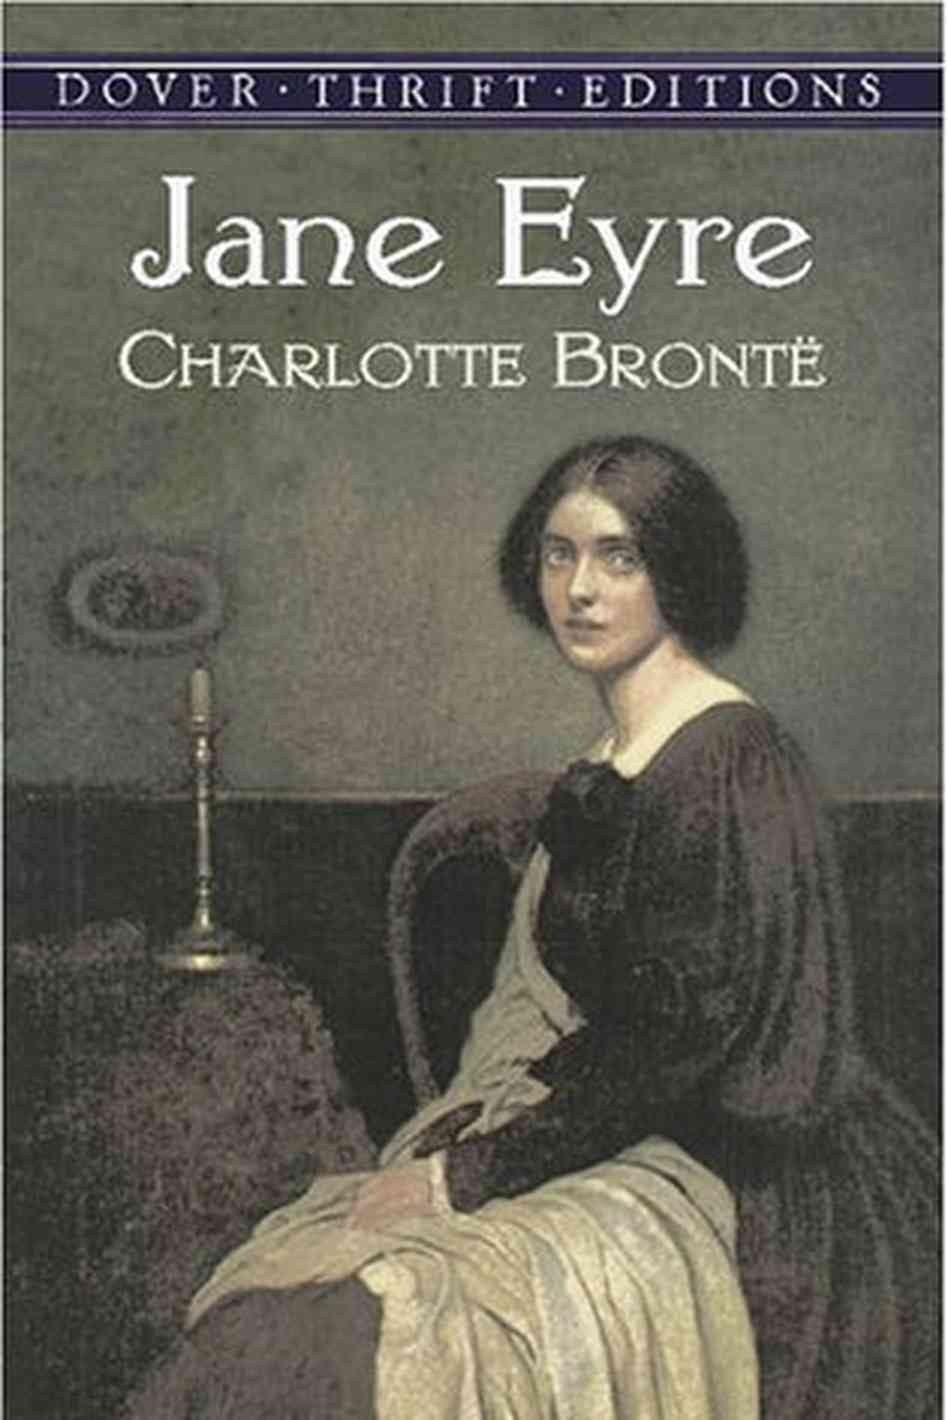 an analysis of the social classes in jane eyre by charlotte bronte Charlotte brontë: a modern woman jane eyre, arguably charlotte brontë social position and recondite intellectual acquisitions are compared to third-class.